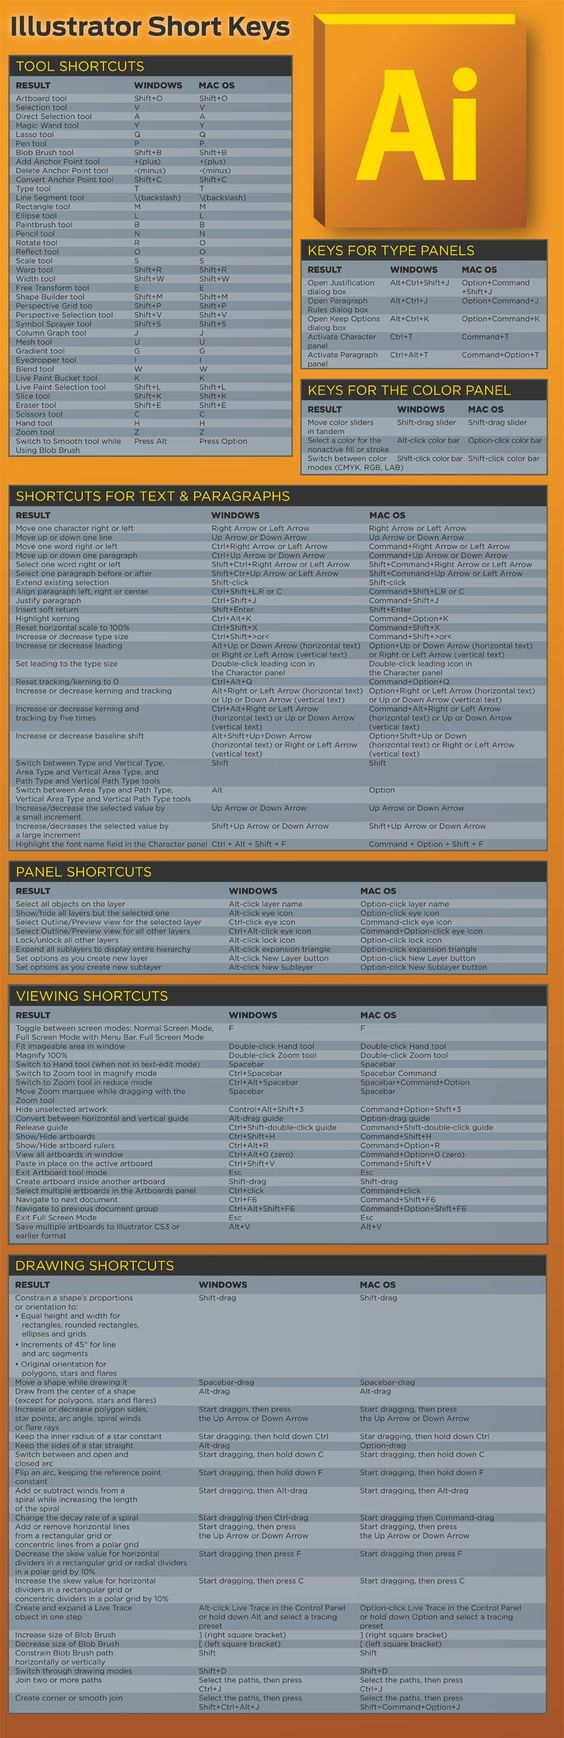 For those that struggle through Illustrator's many commands/functions. #illustrator #adobe